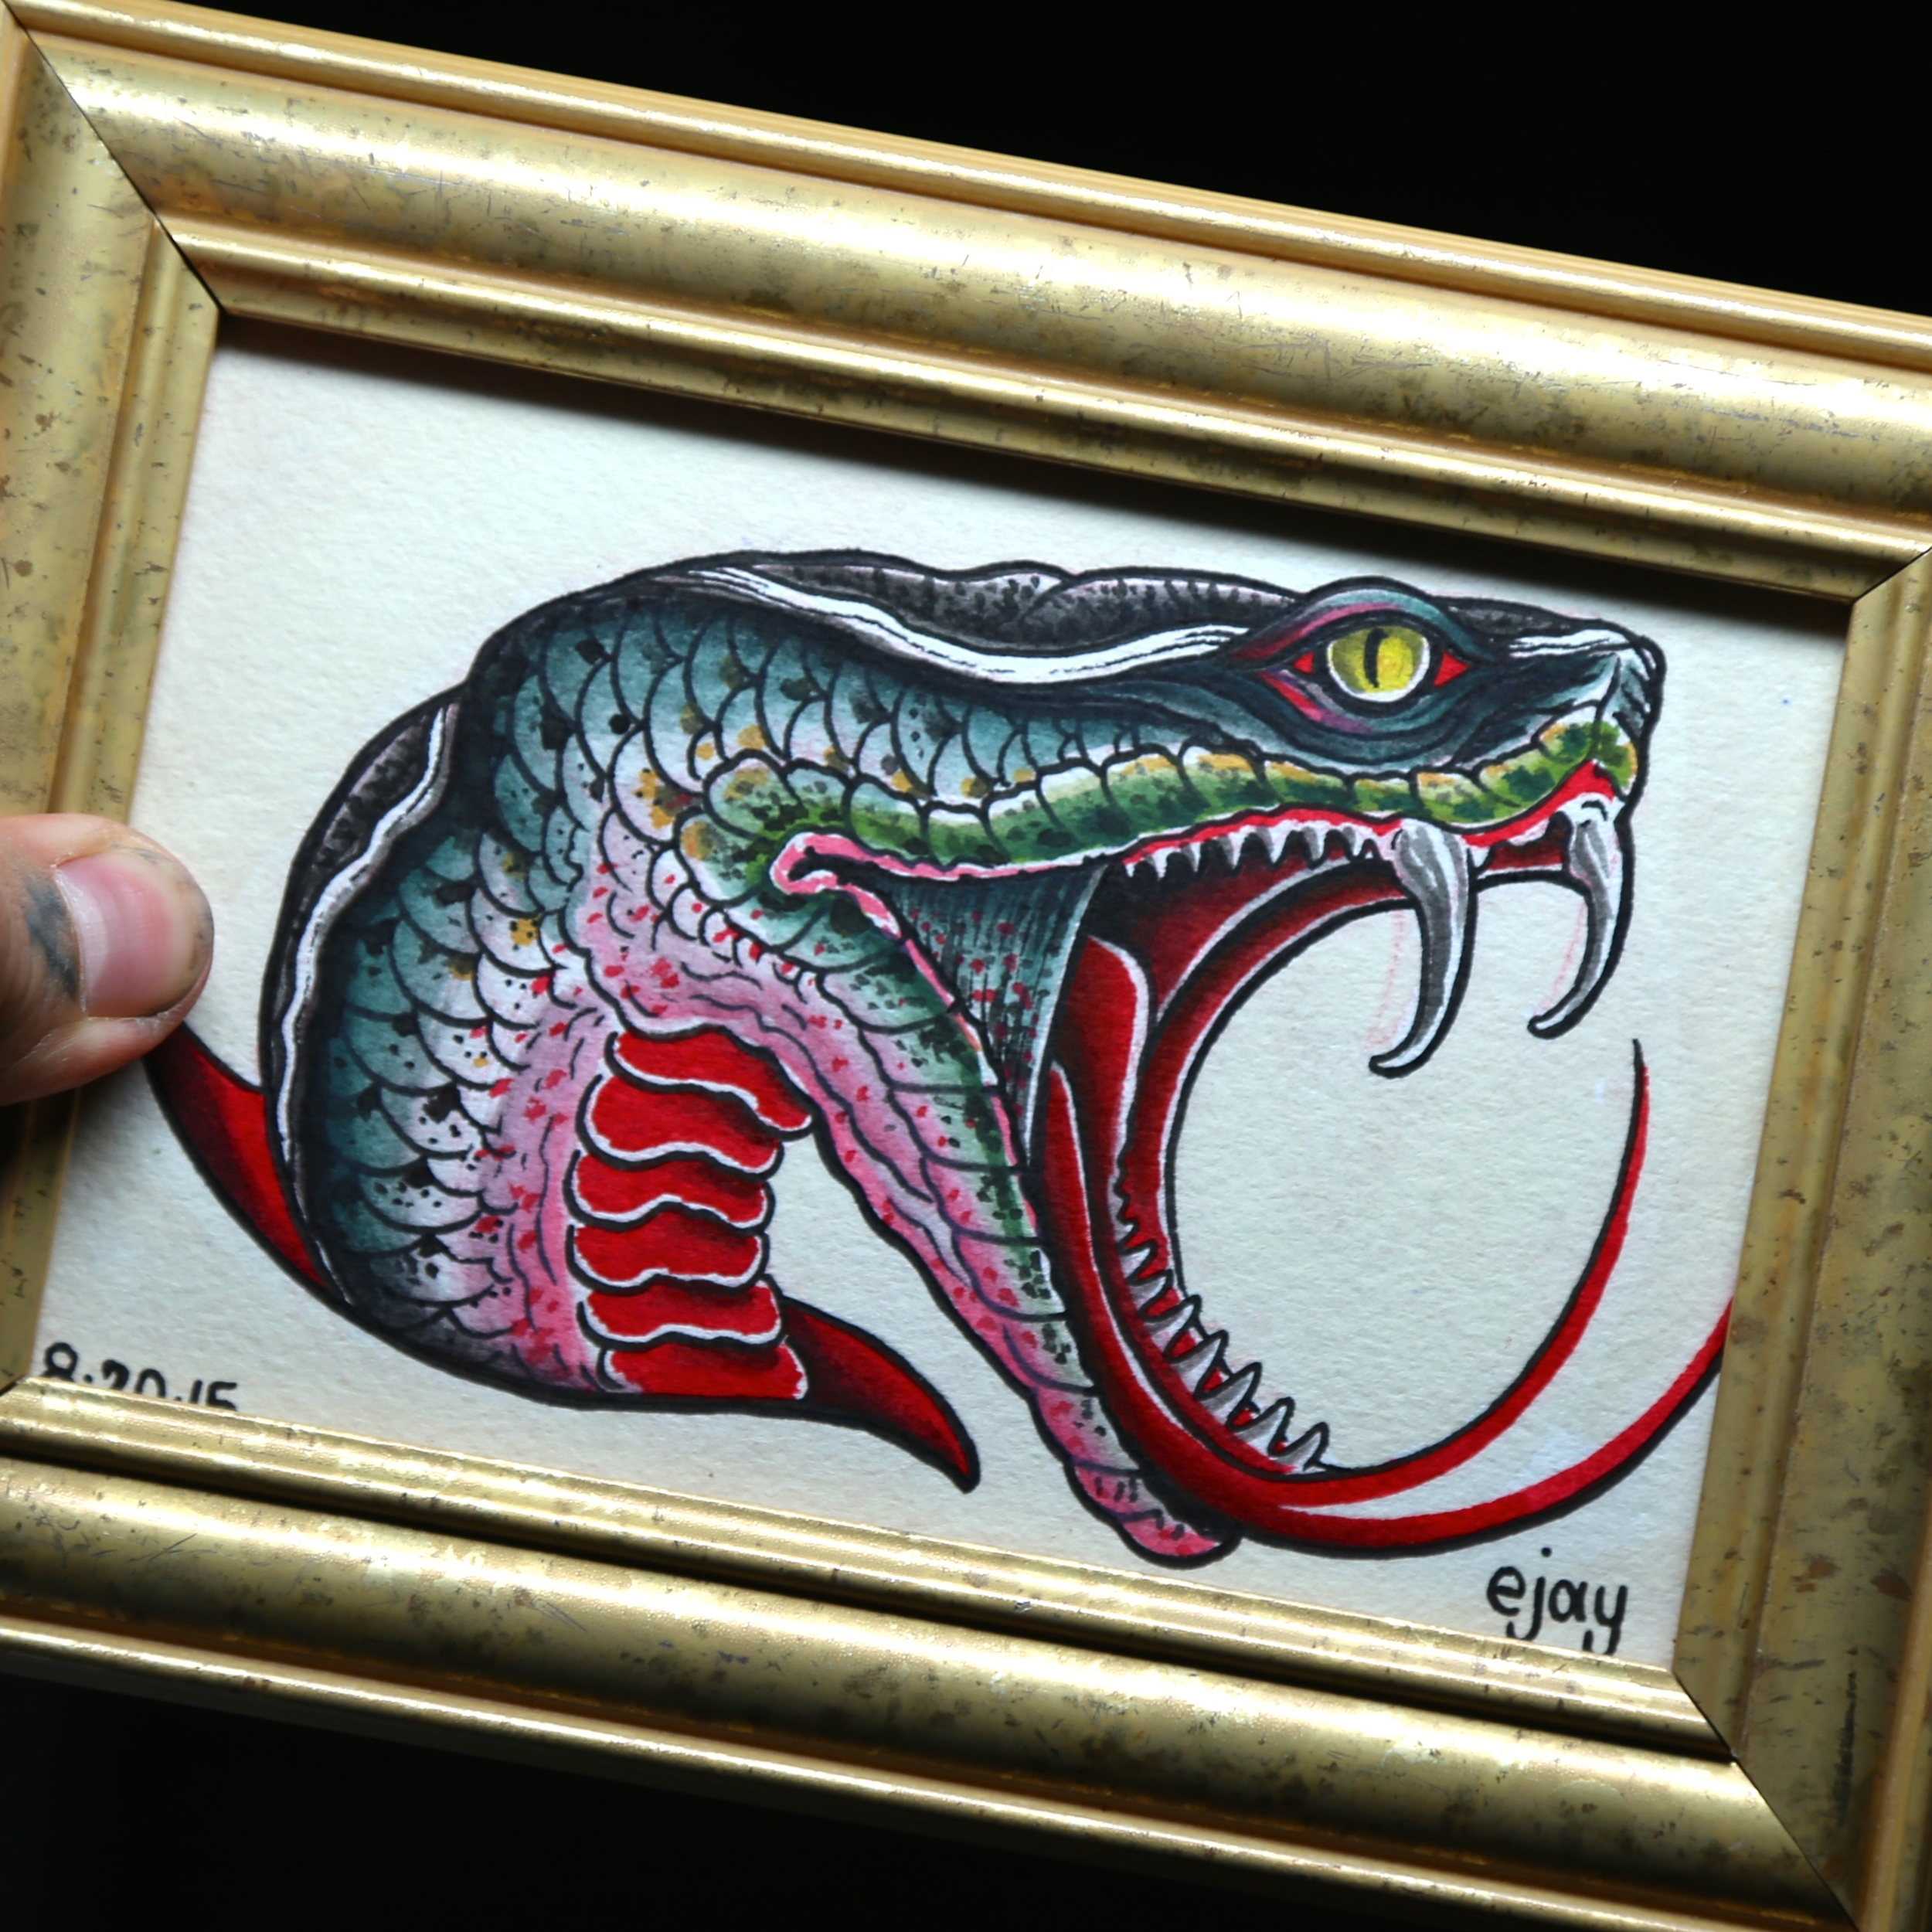 Snake Head Painting enrique bernal ejay tattoo.JPG